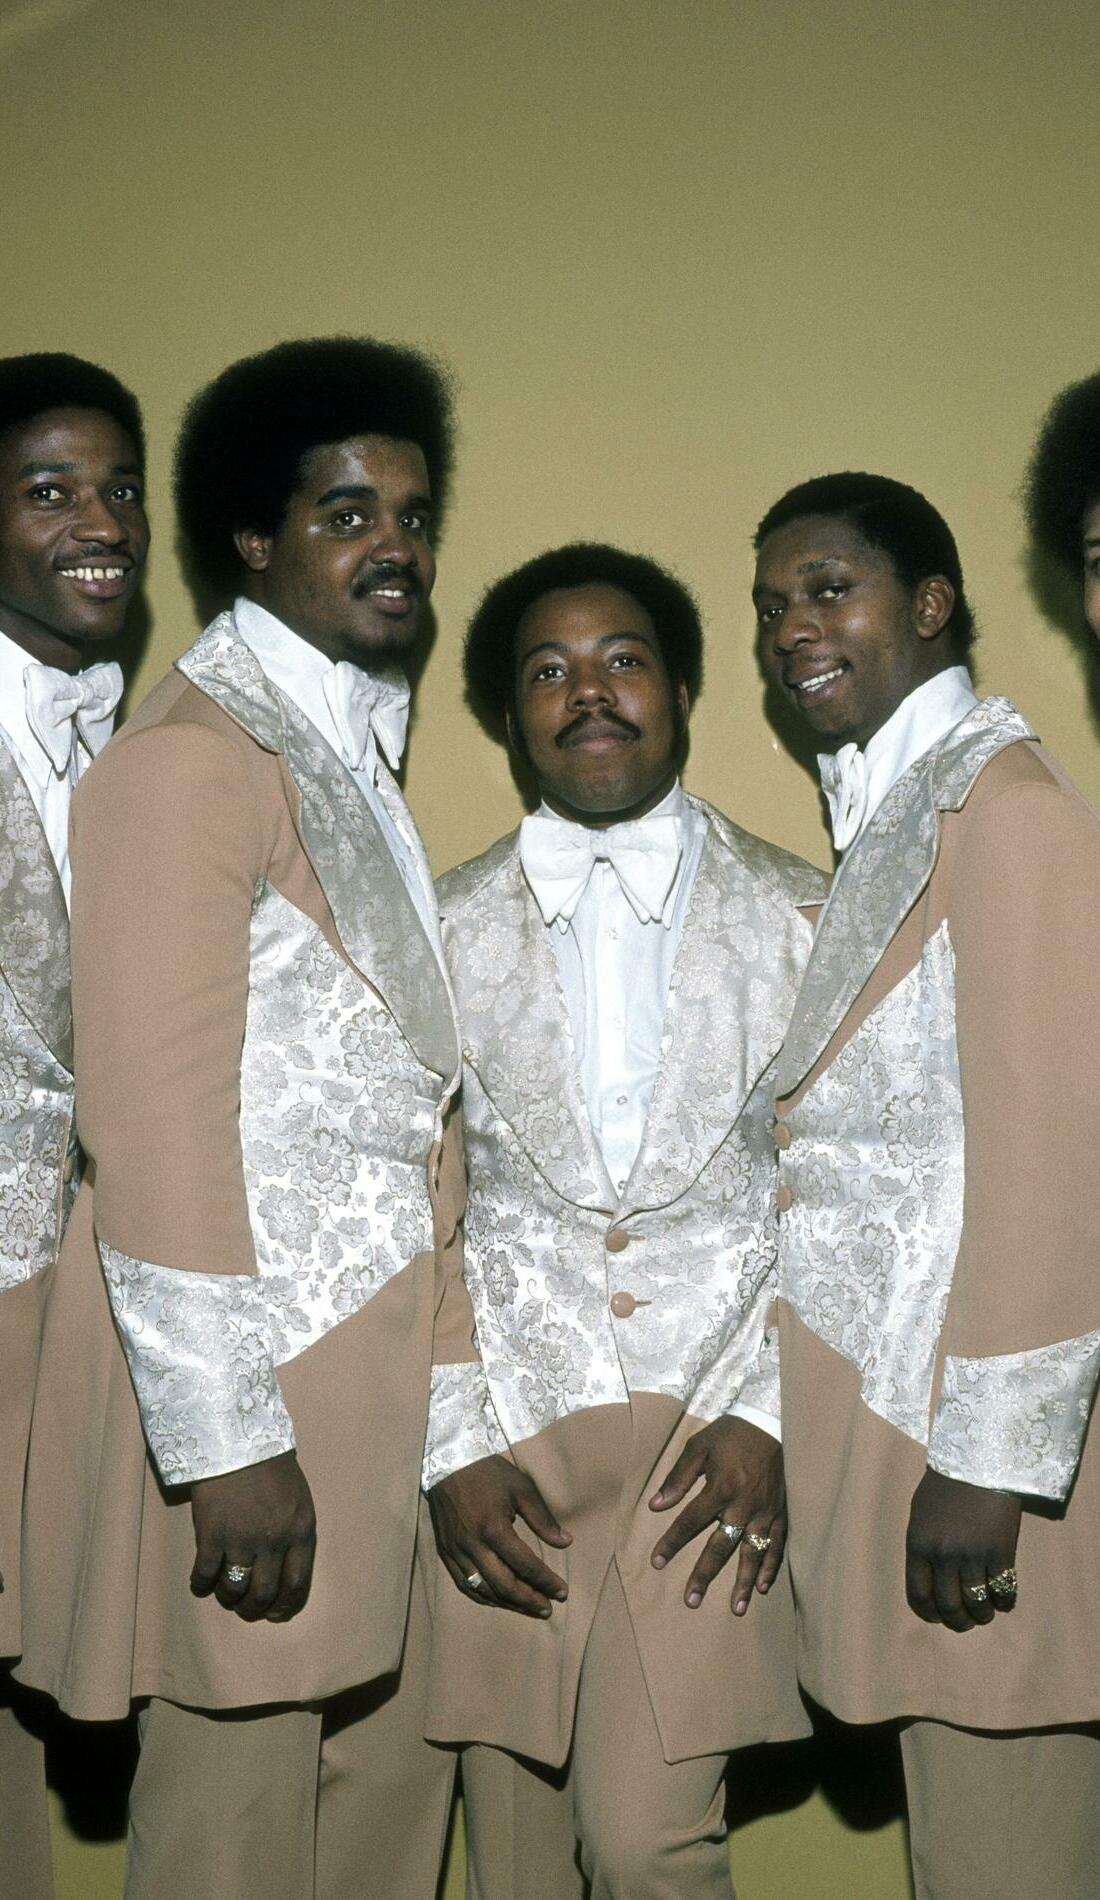 A The Stylistics live event